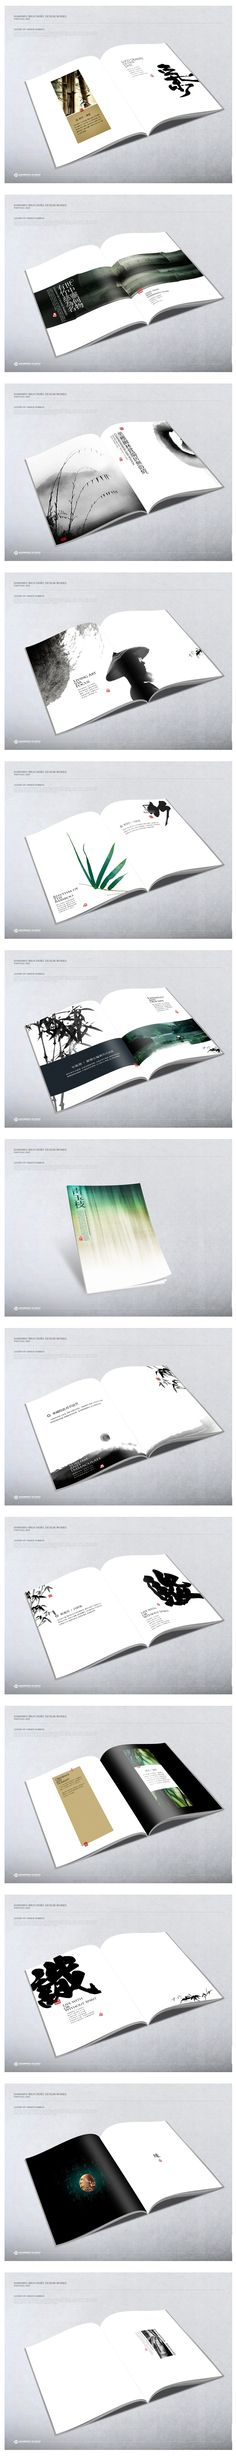 photoshop资源库的微博_微博 Print Layout, Layout Design, Chinese Picture, Chinese Style, School Brochure, Buch Design, Picture Albums, Publication Design, Book Layout